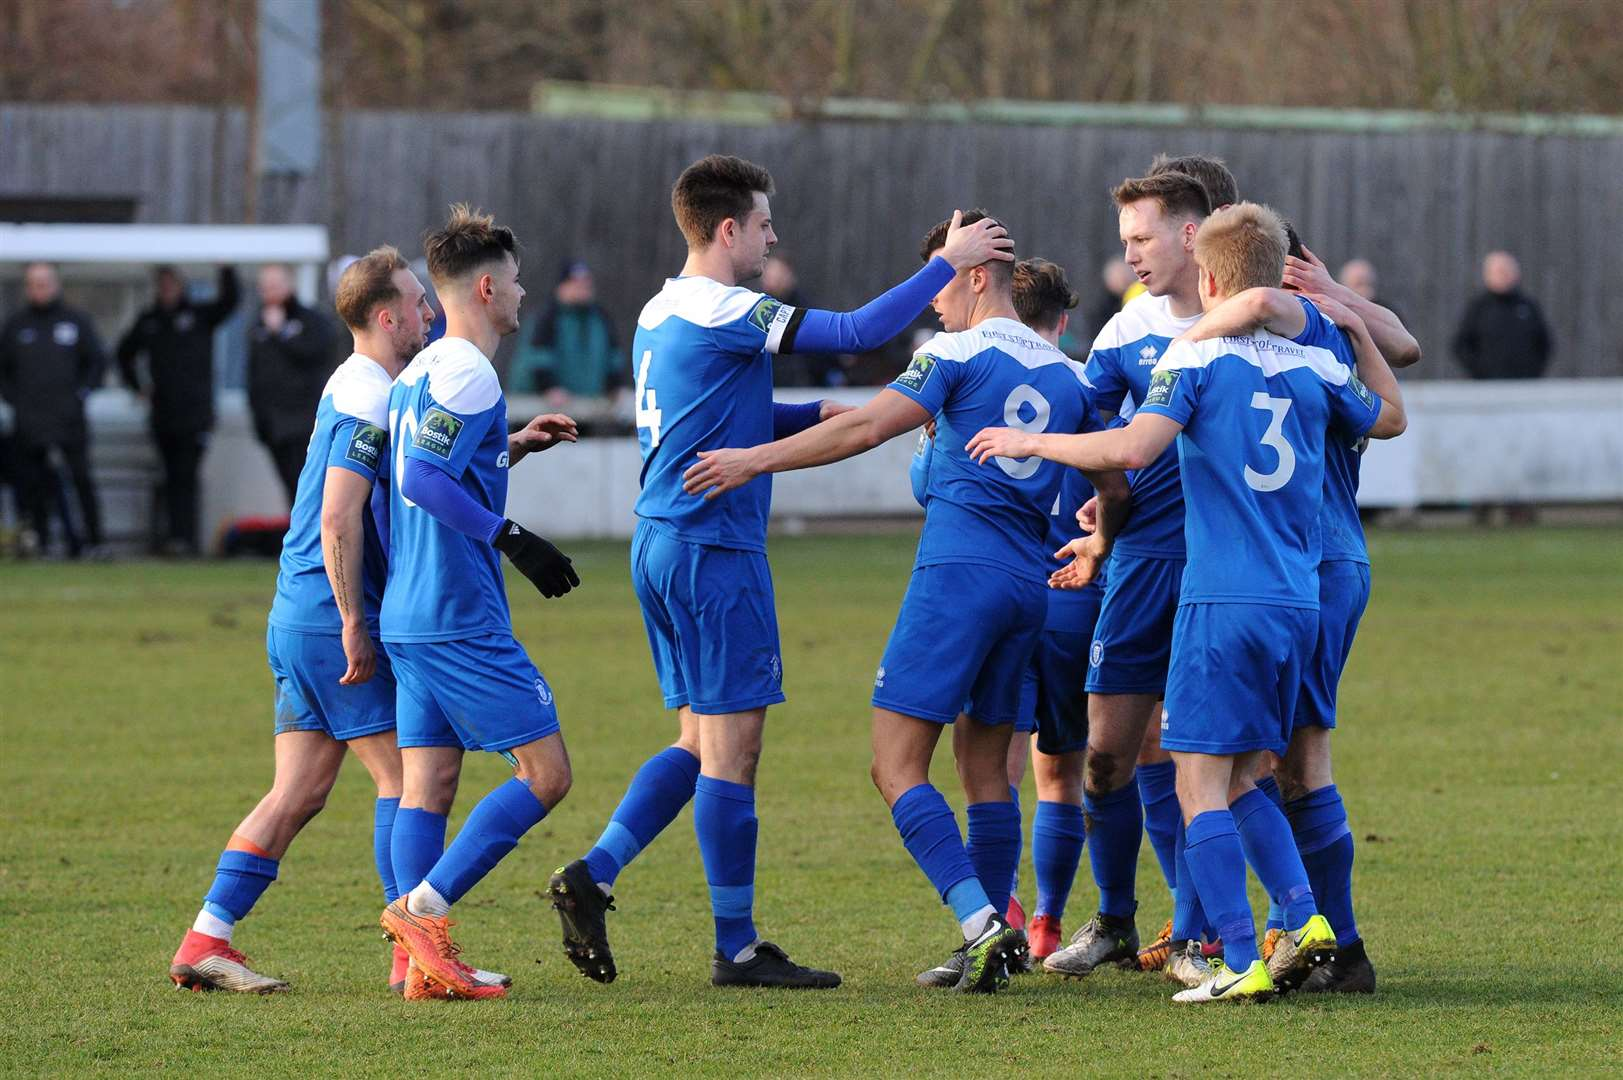 Bury Town celebrating a goal against Basildon United in their 4-2 home win of the 2018/19 season. Picture: Mecha Morton